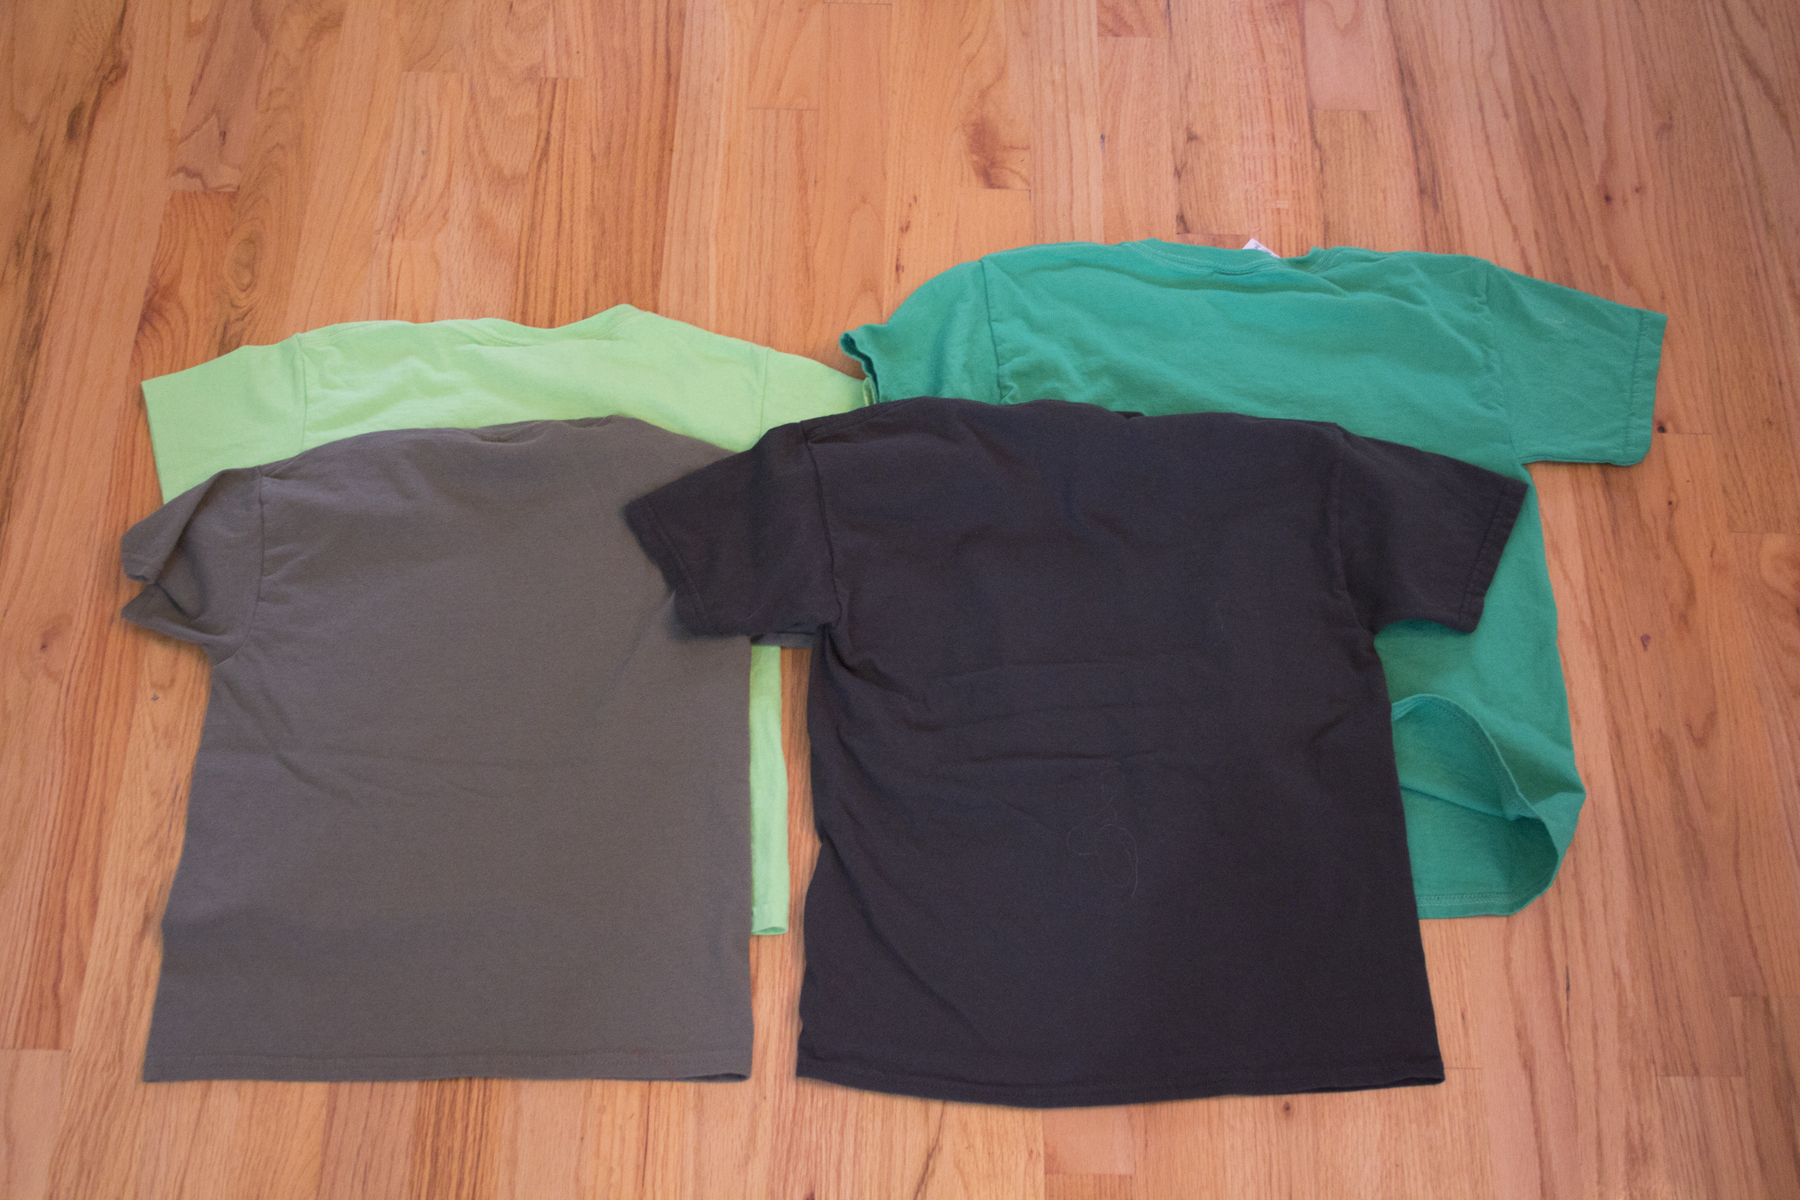 these are the original t-shirt colors without designs.